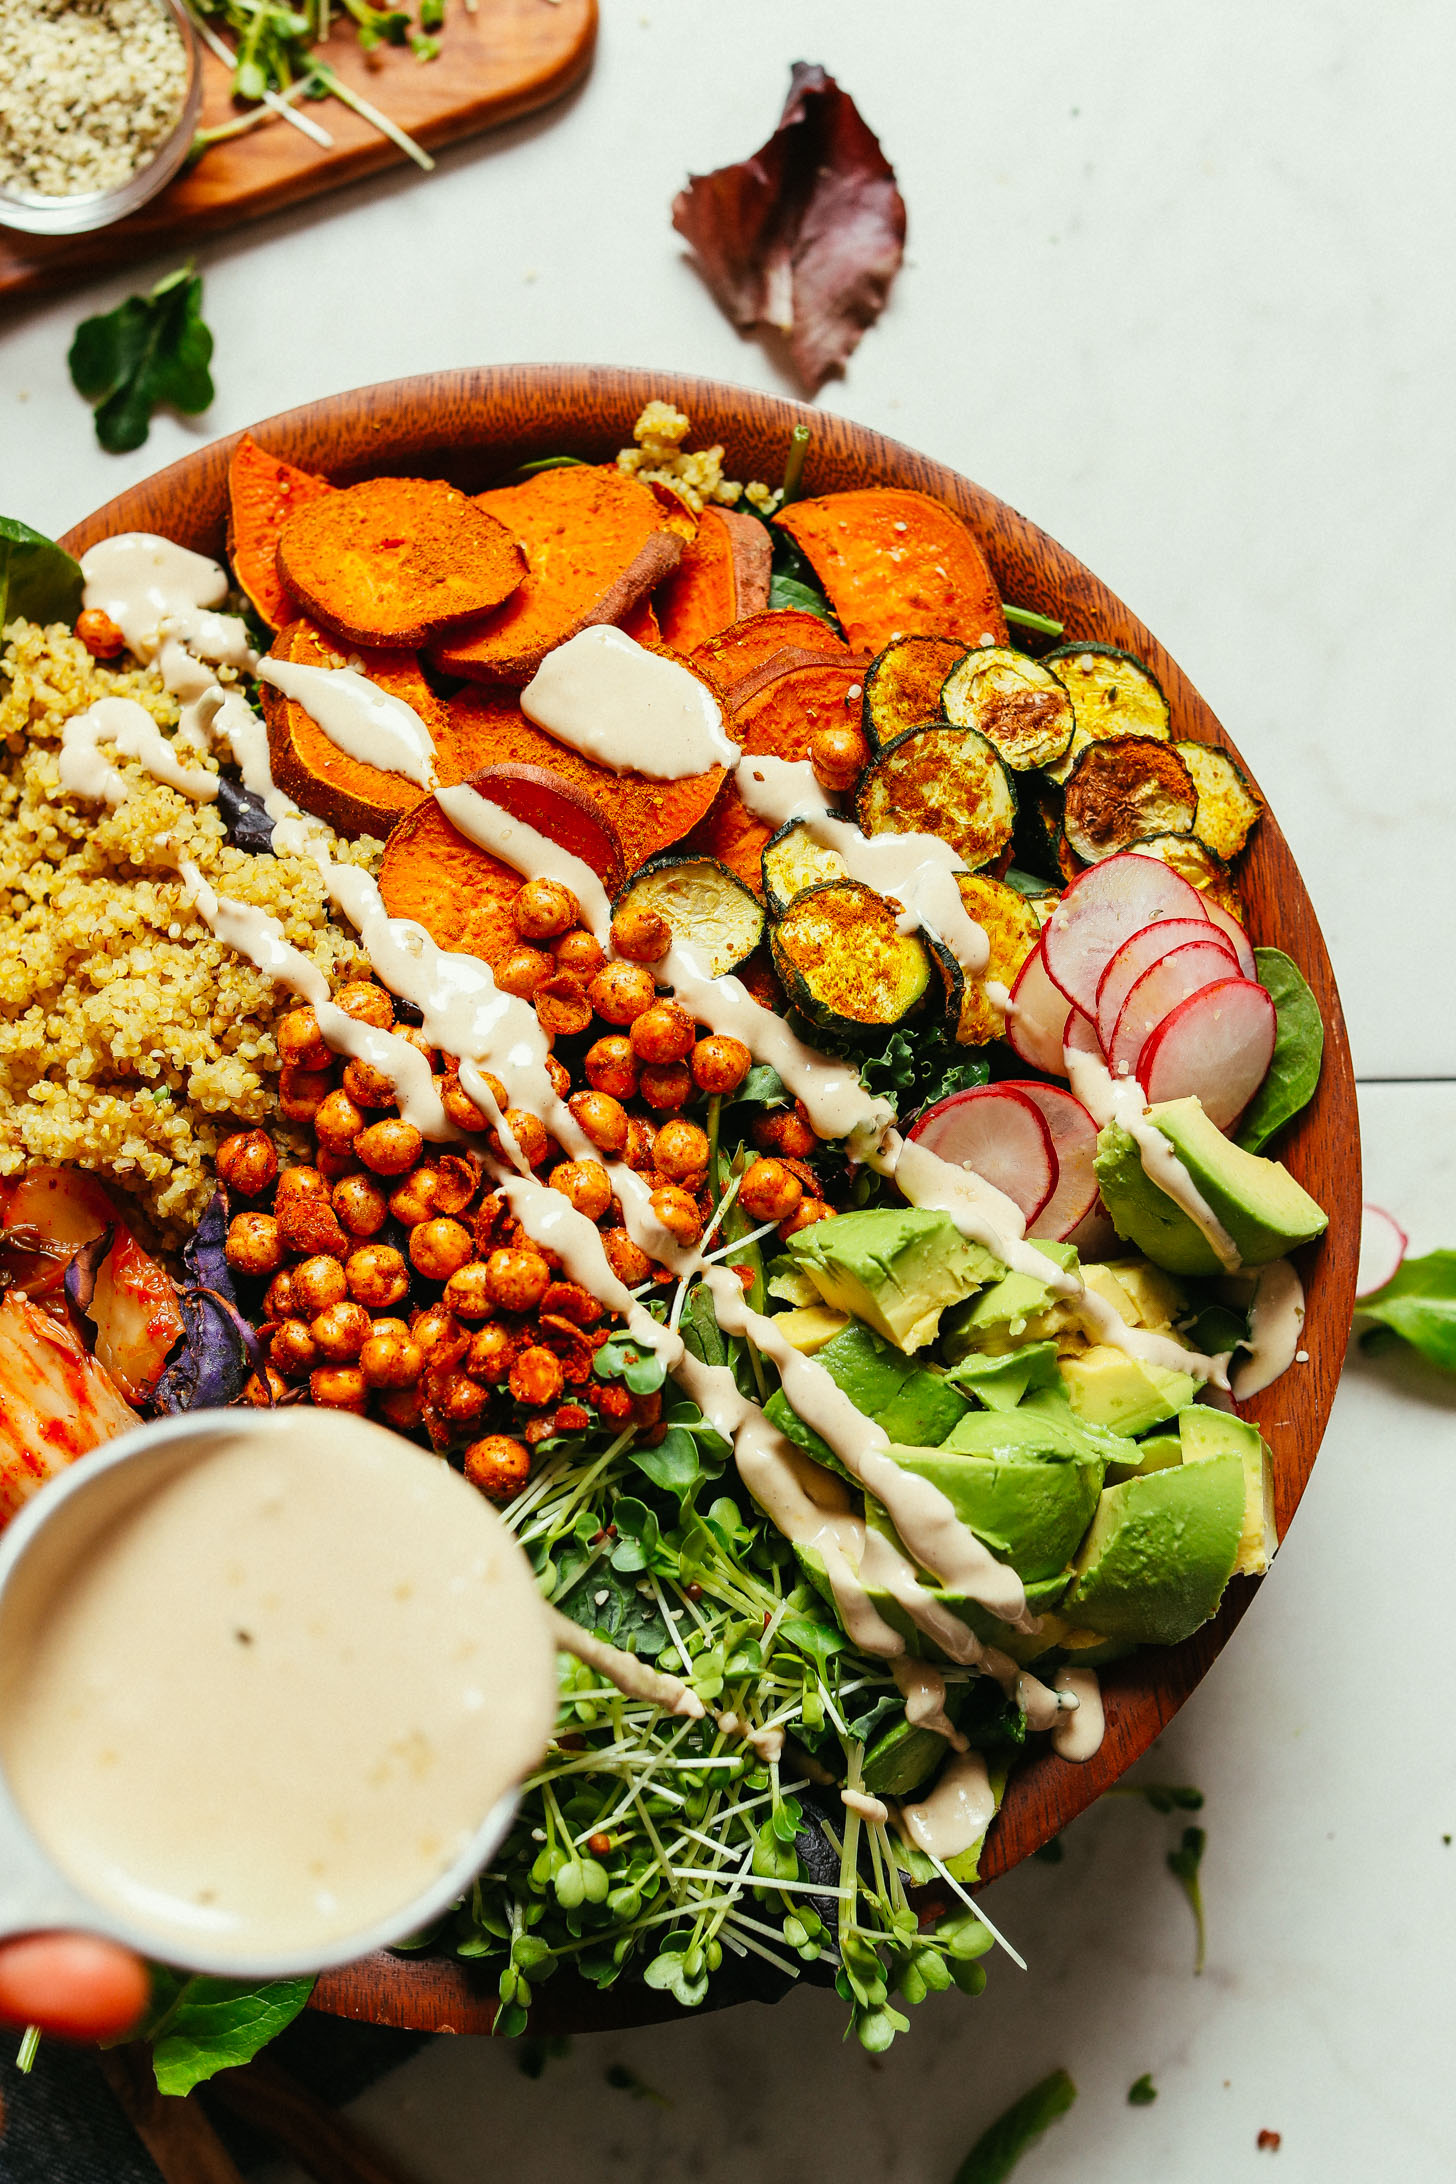 Drizzling Savory Tahini Dressing over our healthy, colorful Abundance Green Salad